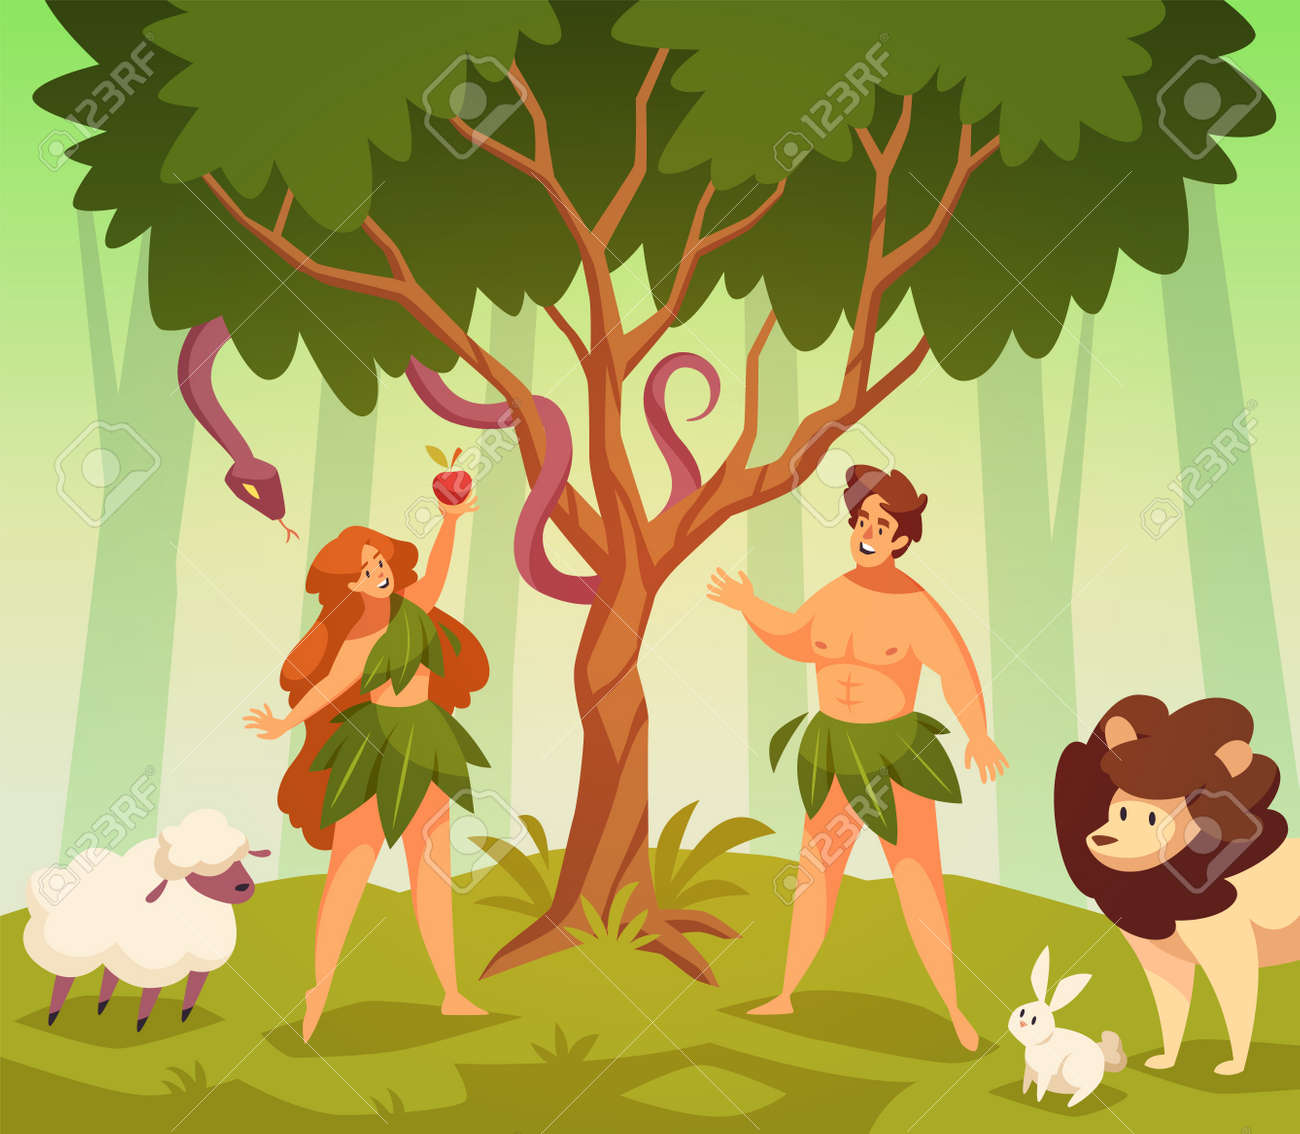 Adam and eve. Bible story scene first man and woman in garden eden, knowledge good and evil, snake of temptation and apple. Couple stand under tree. Religion scene vector cartoon concept - 171265371